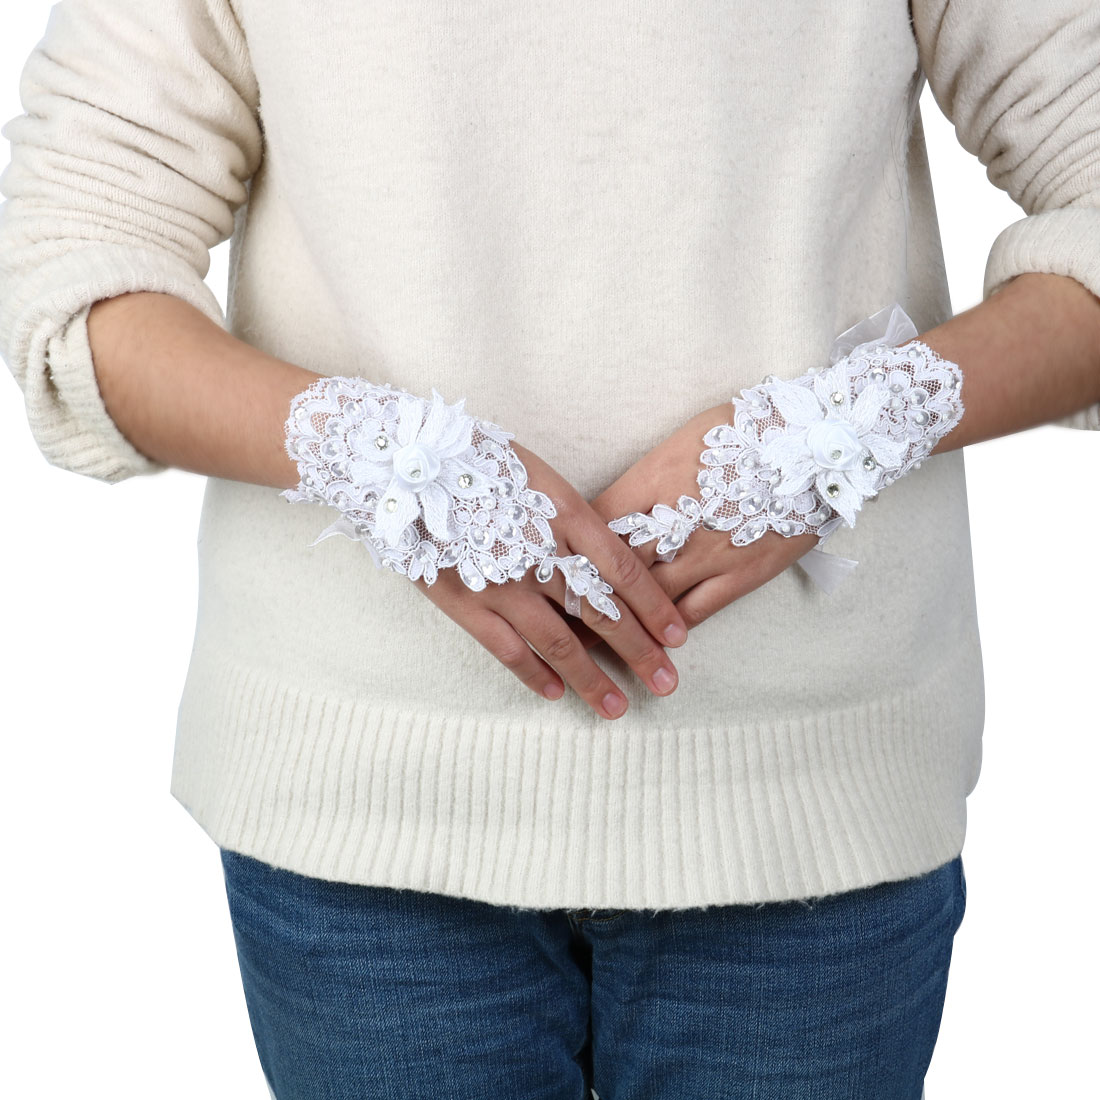 Lady Rose Decor Embroidery Bridesmaid Hand Ornament Lace Fingerless Glove Pair